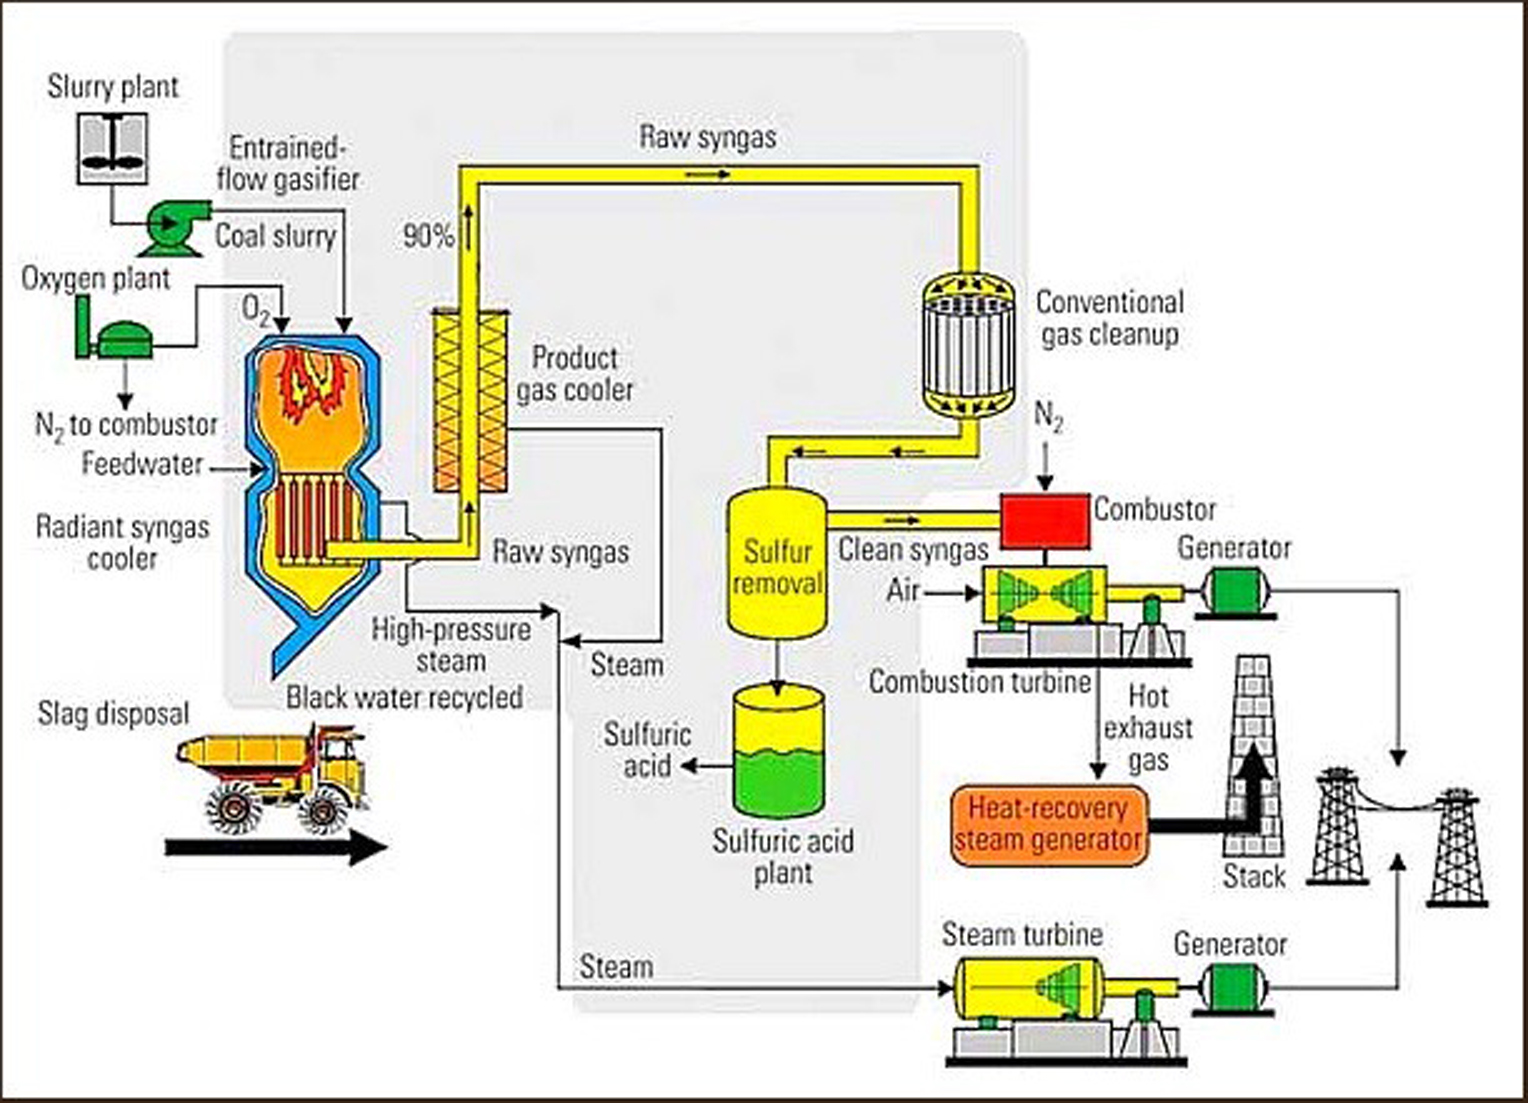 Enerbay Power Plants Plant Cycle Diagram This Is How A Combined Works To Produce Electricity And Captures Waste Heat From The Gas Turbine Increase Efficiency Electrical Output